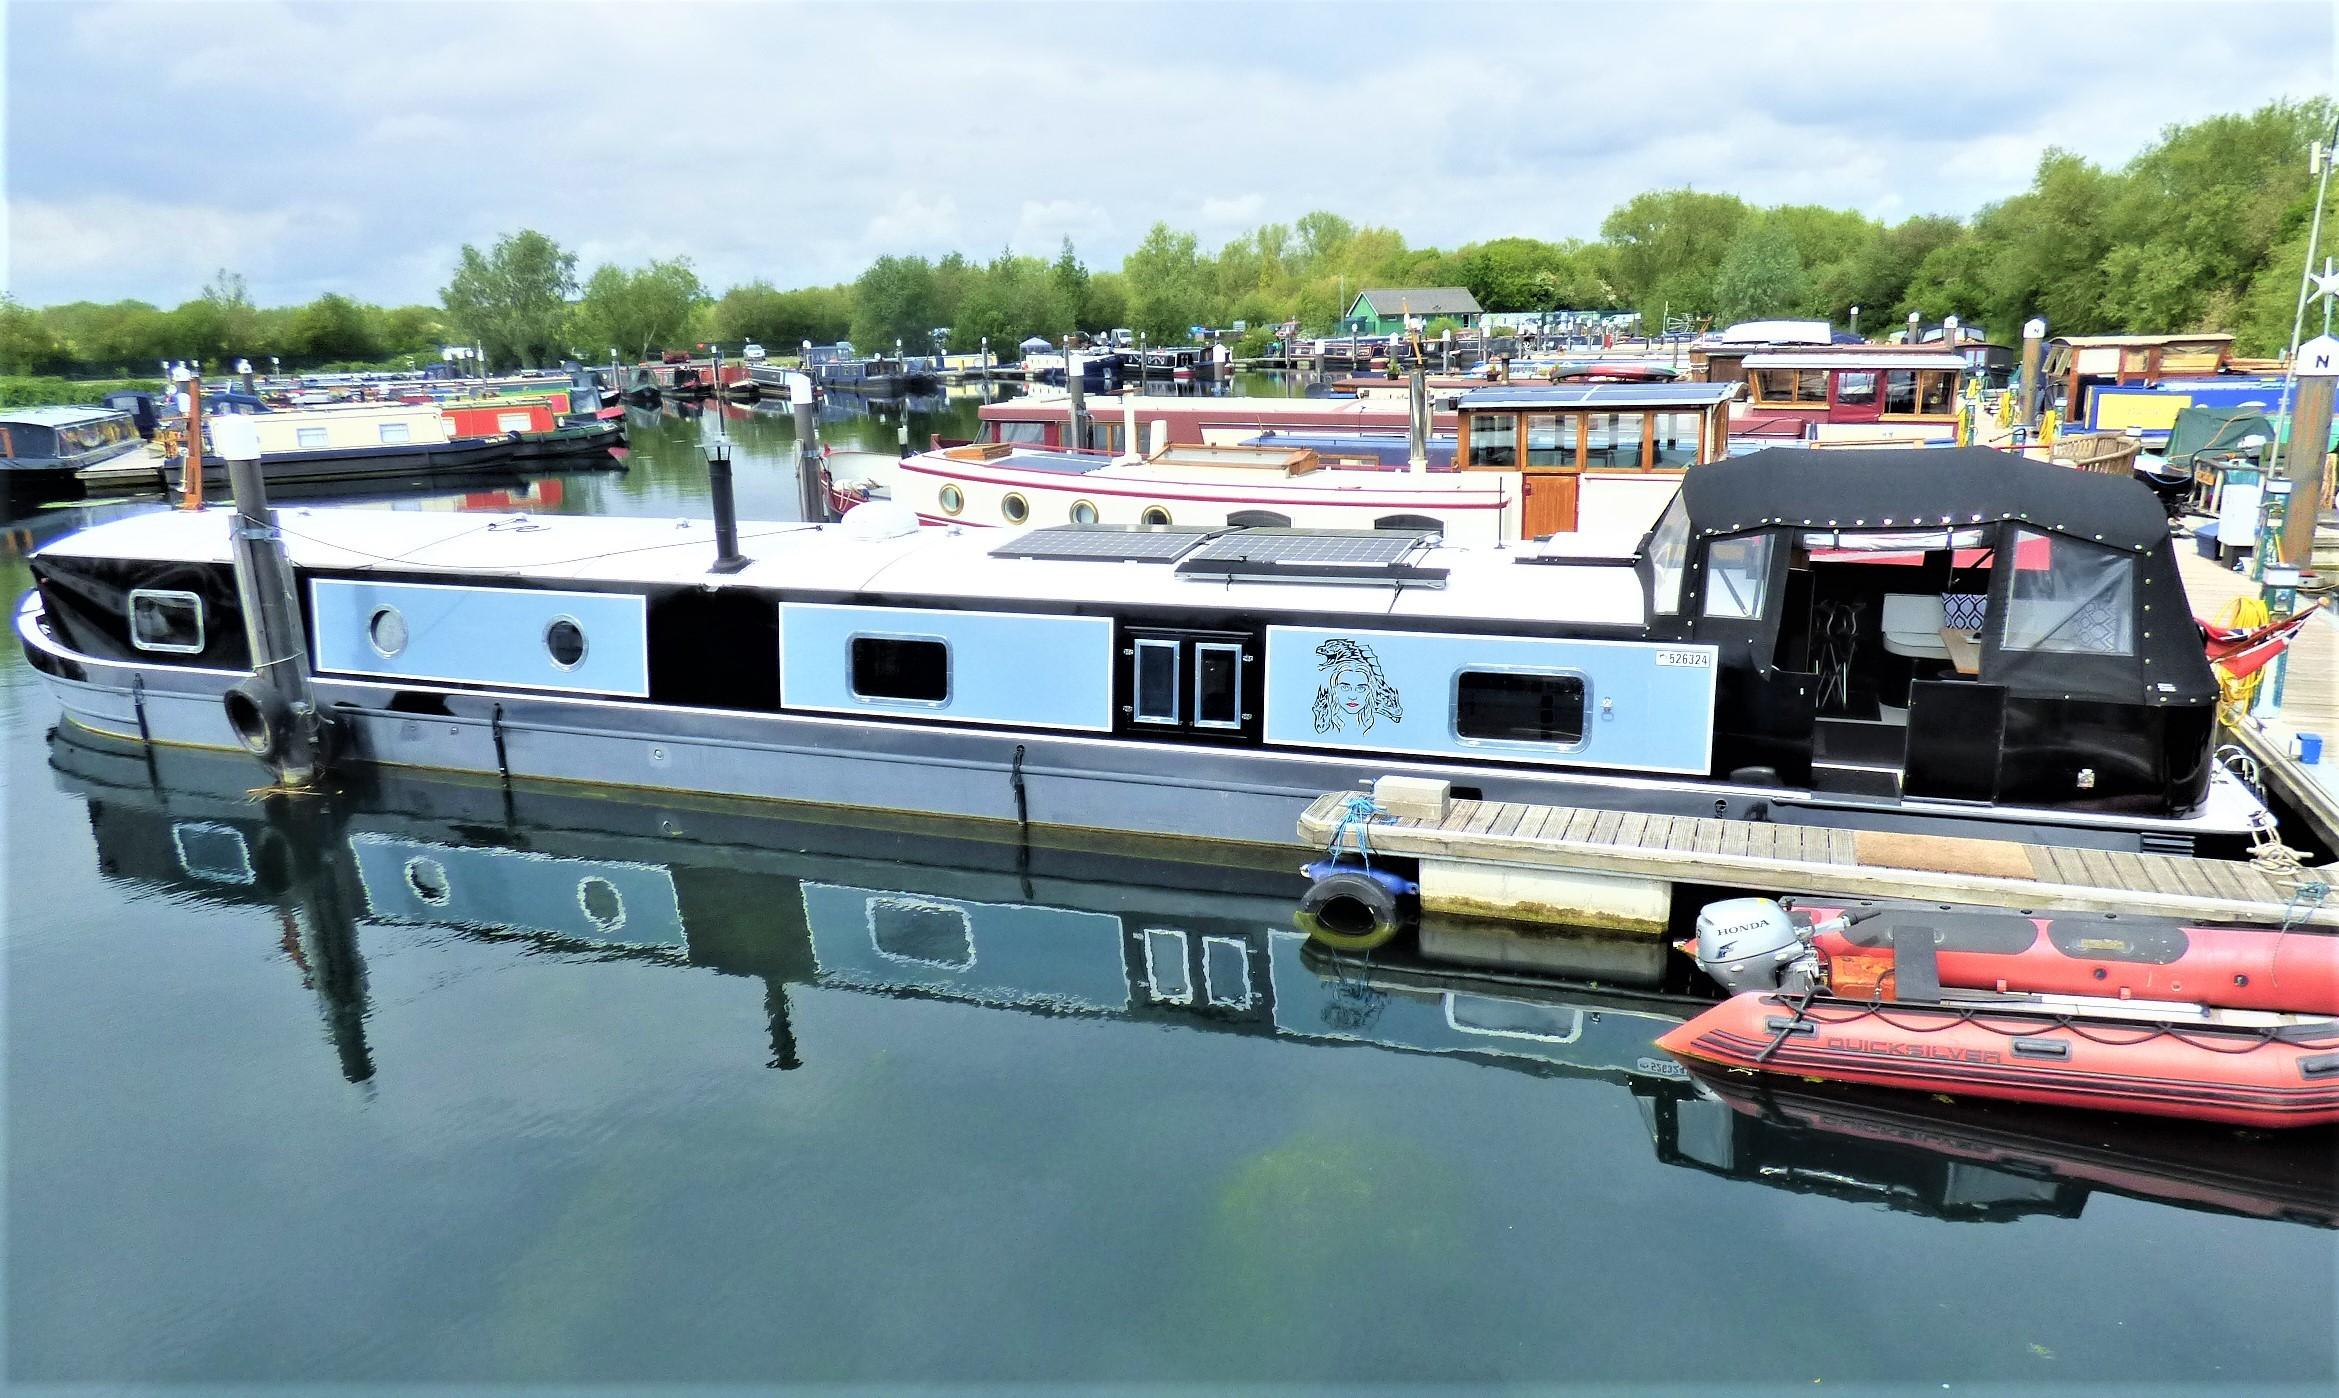 canal 3 way switch panel barge yacht. river cruiser Narrowboat